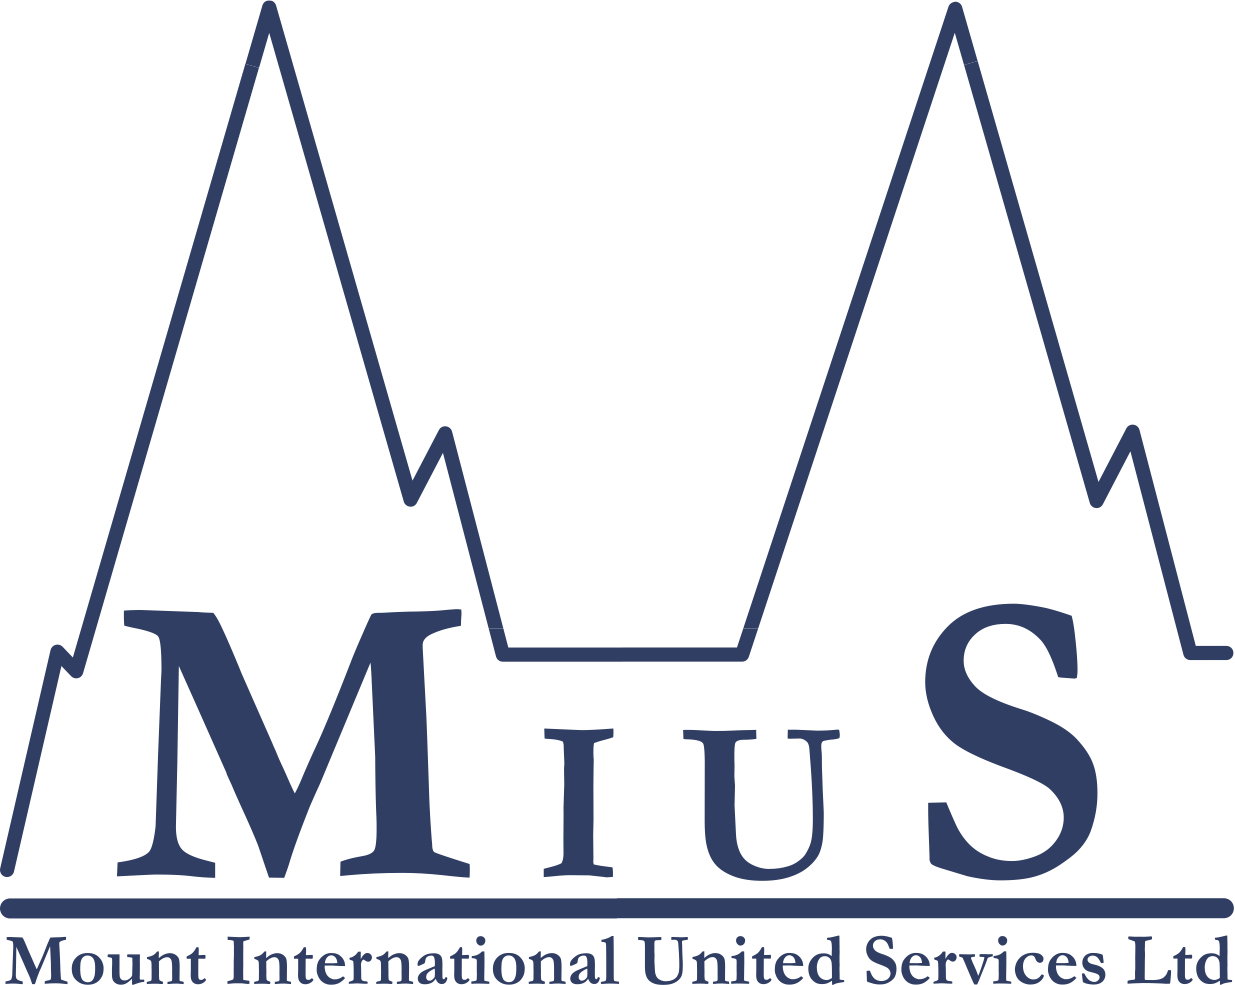 Mount International United Services Ltd